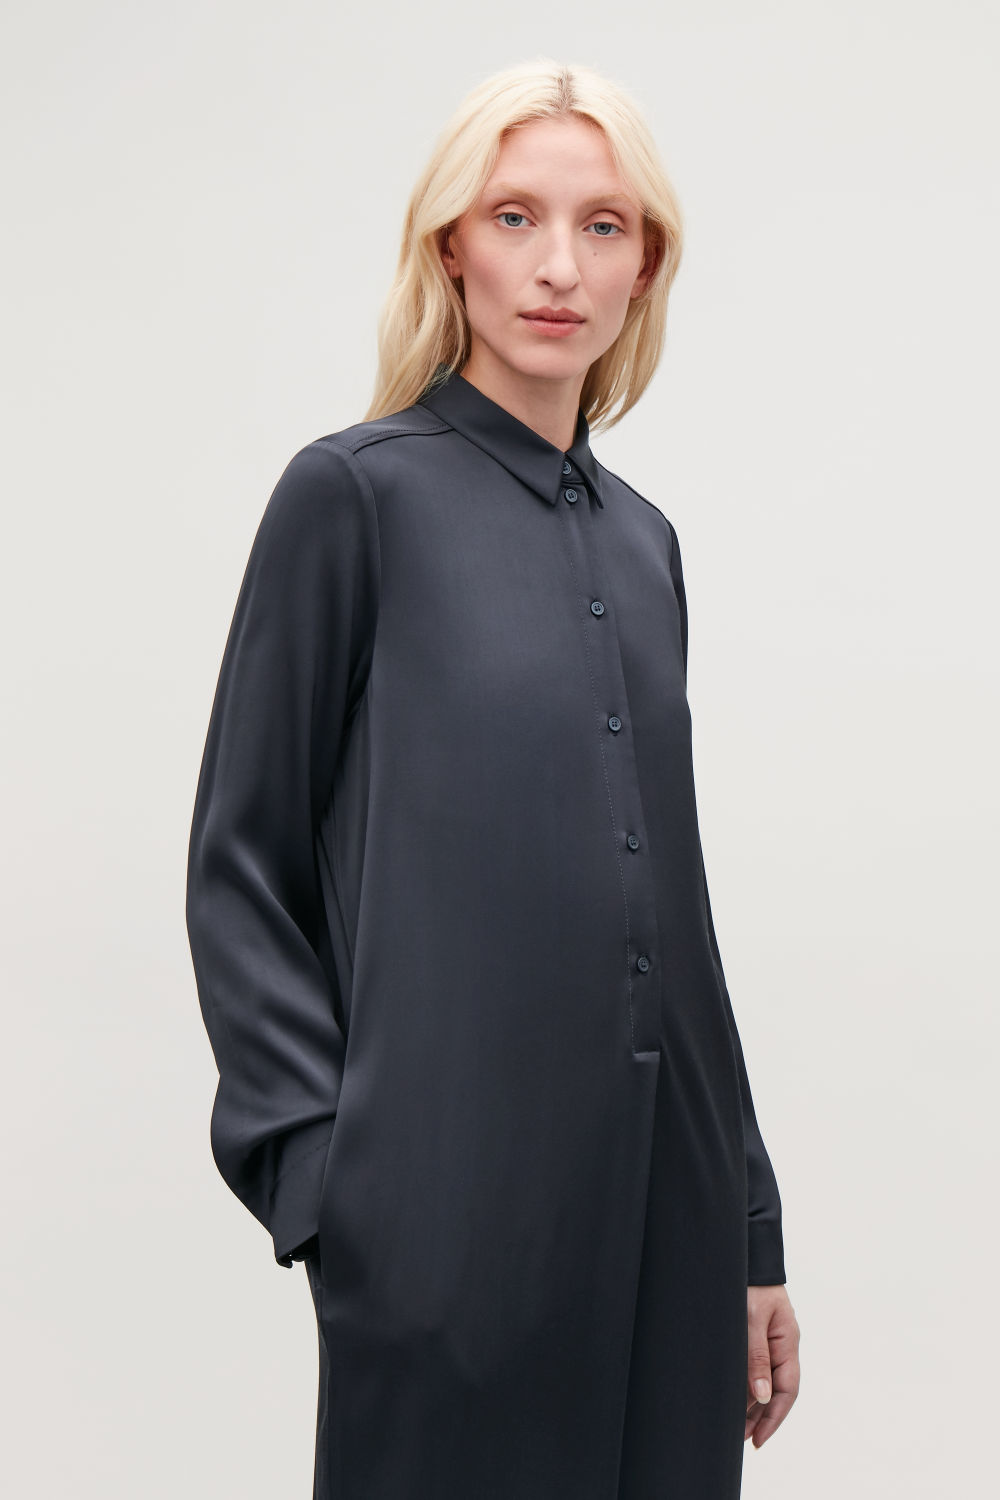 MID-LENGTH SHIRT DRESS